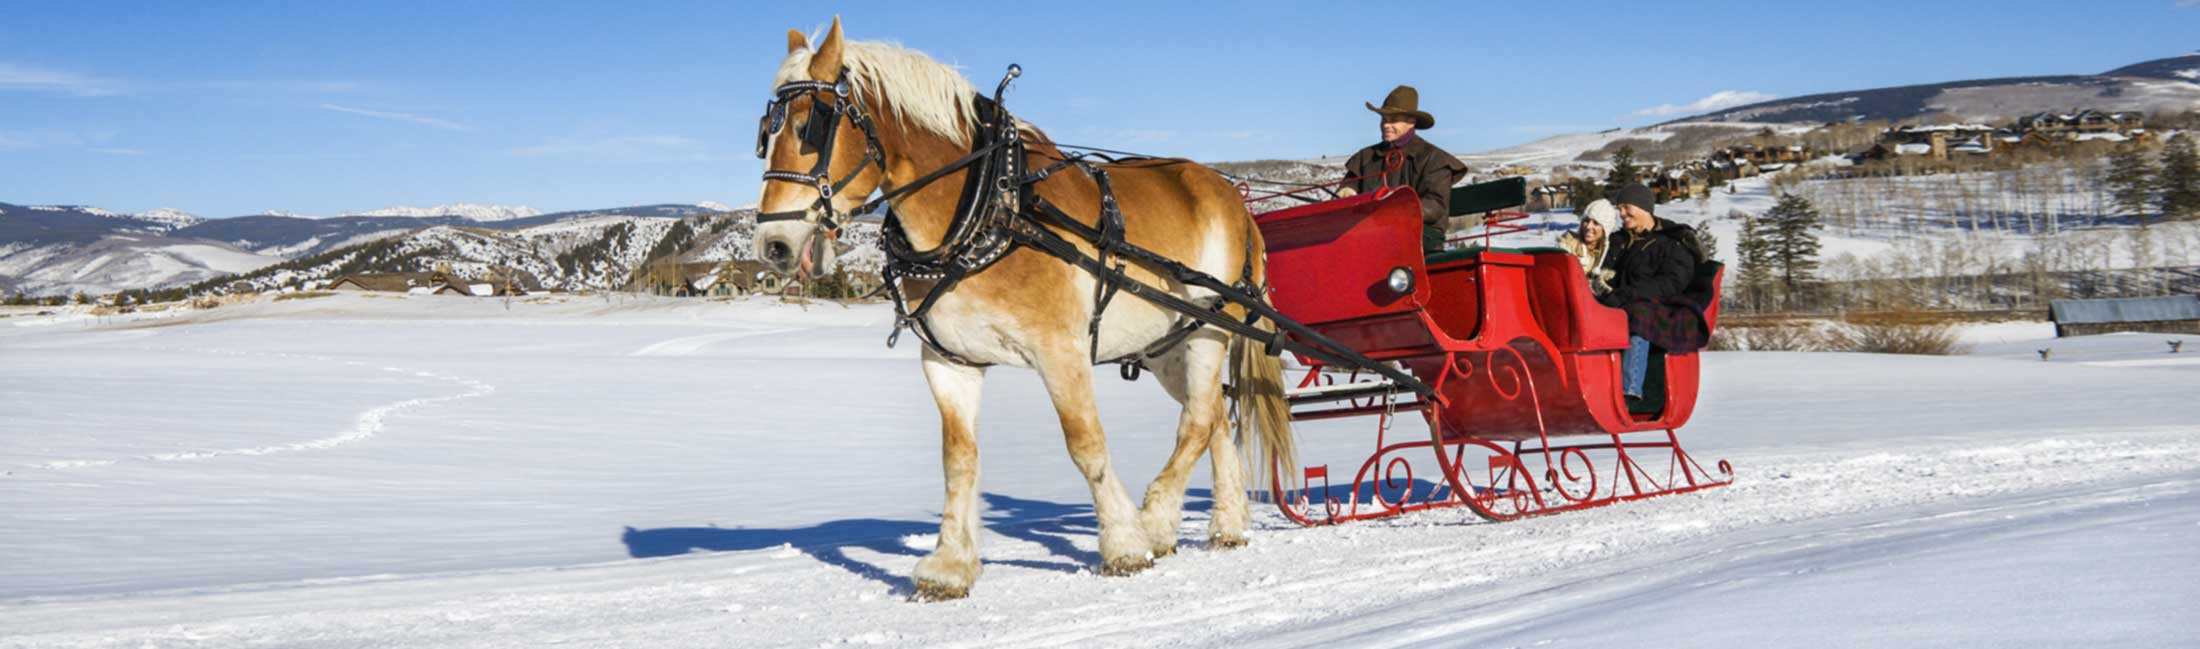 Sleigh Rides in Missoula, Montana